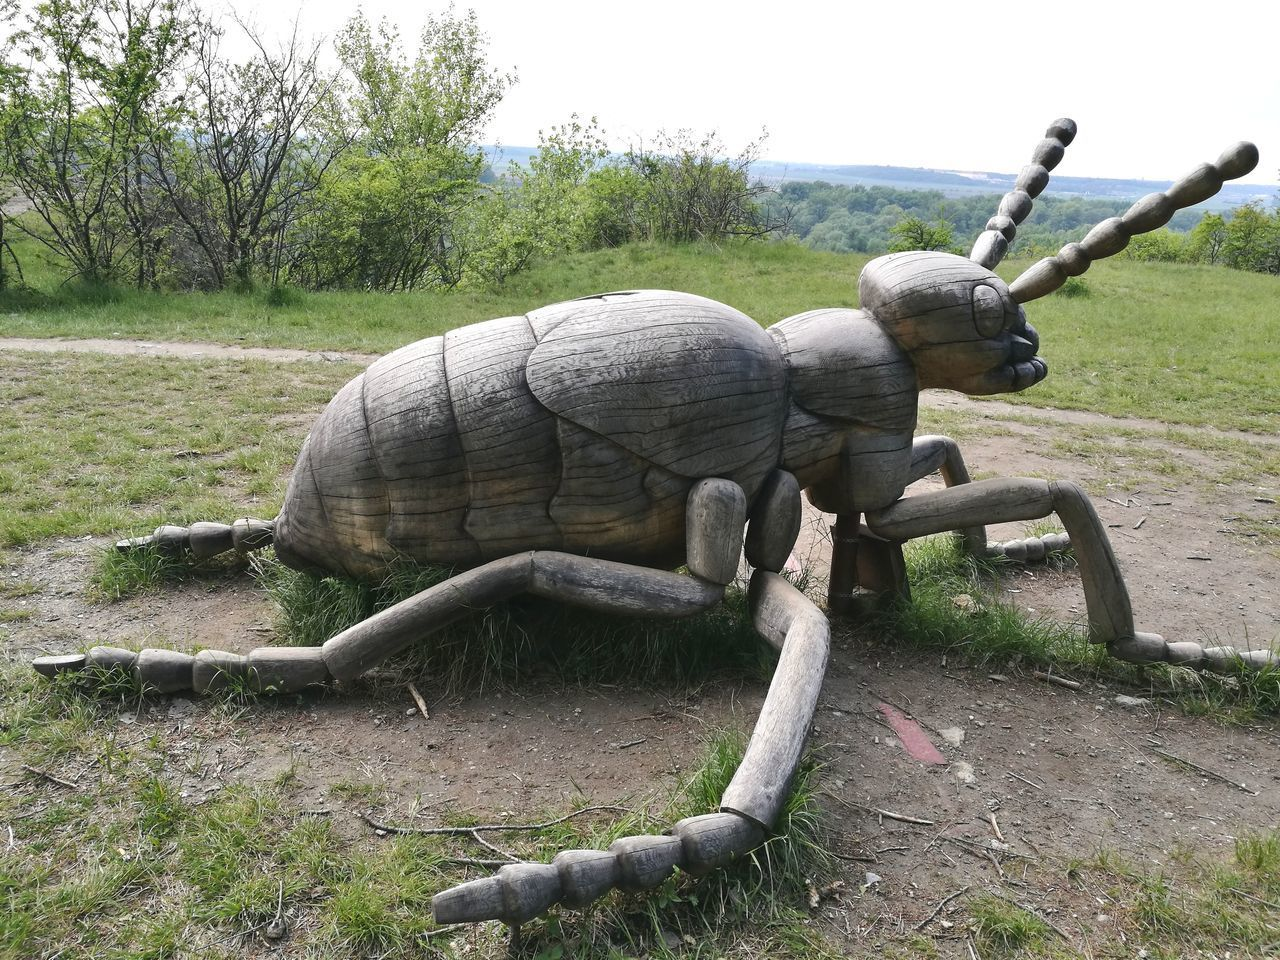 No People Animal Wildlife Reptile Nature One Animal Outdoors Day Sculpture Animals In The Wild Rhinoceros Water Animal Themes Iguana Close-up Mammal Sky Beauty In Nature Slovakia Nature Wood